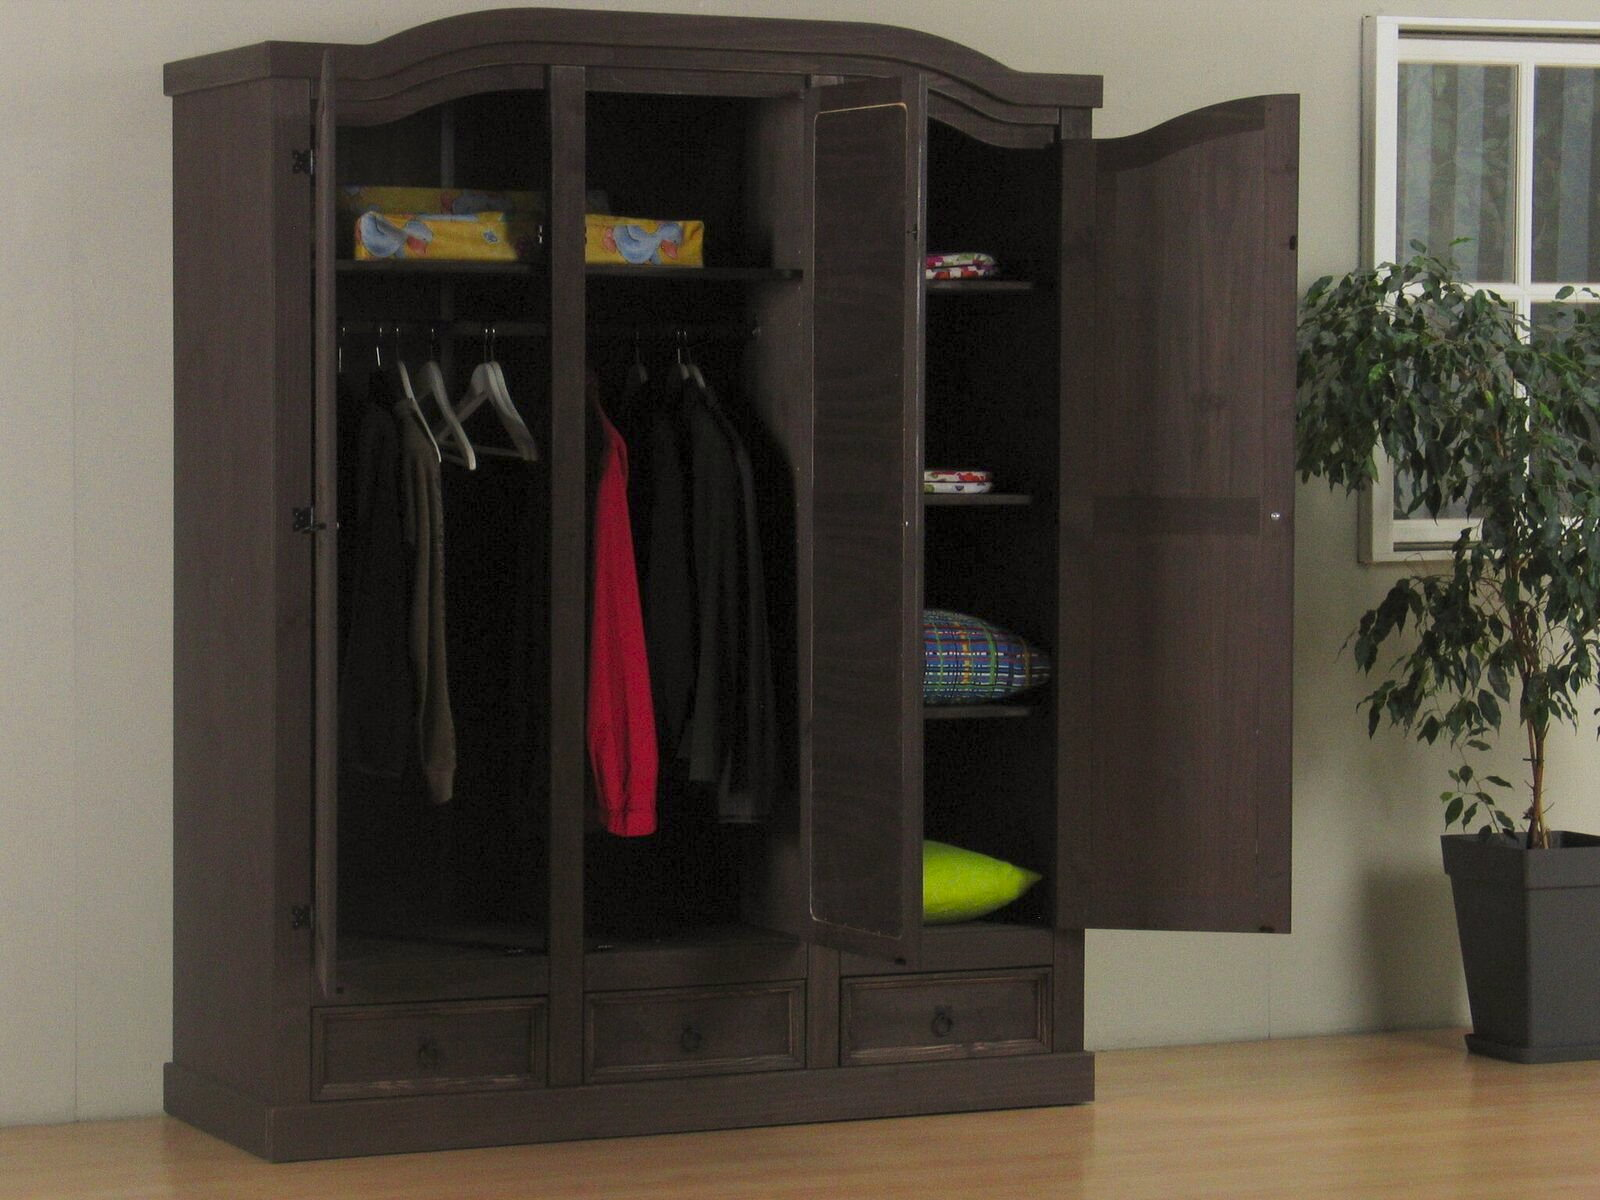 3 t riger kiefer kleiderschrank new mexico kolonial m bel. Black Bedroom Furniture Sets. Home Design Ideas